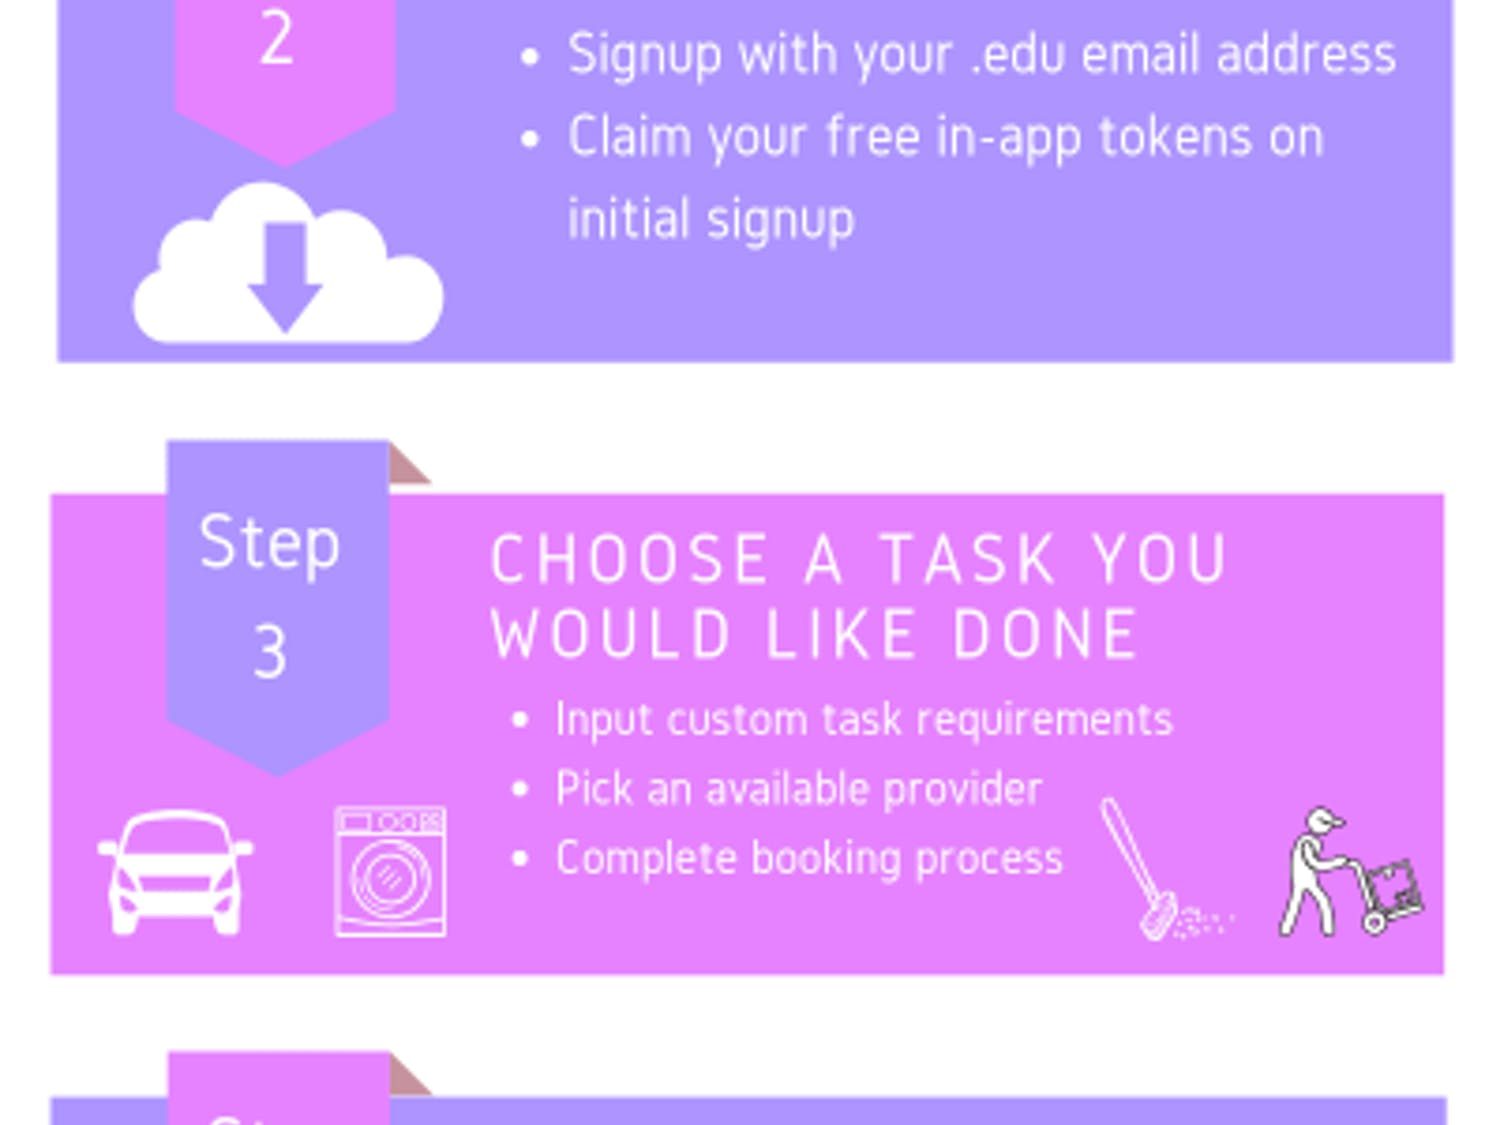 A step by step guide to using the Equilli App.